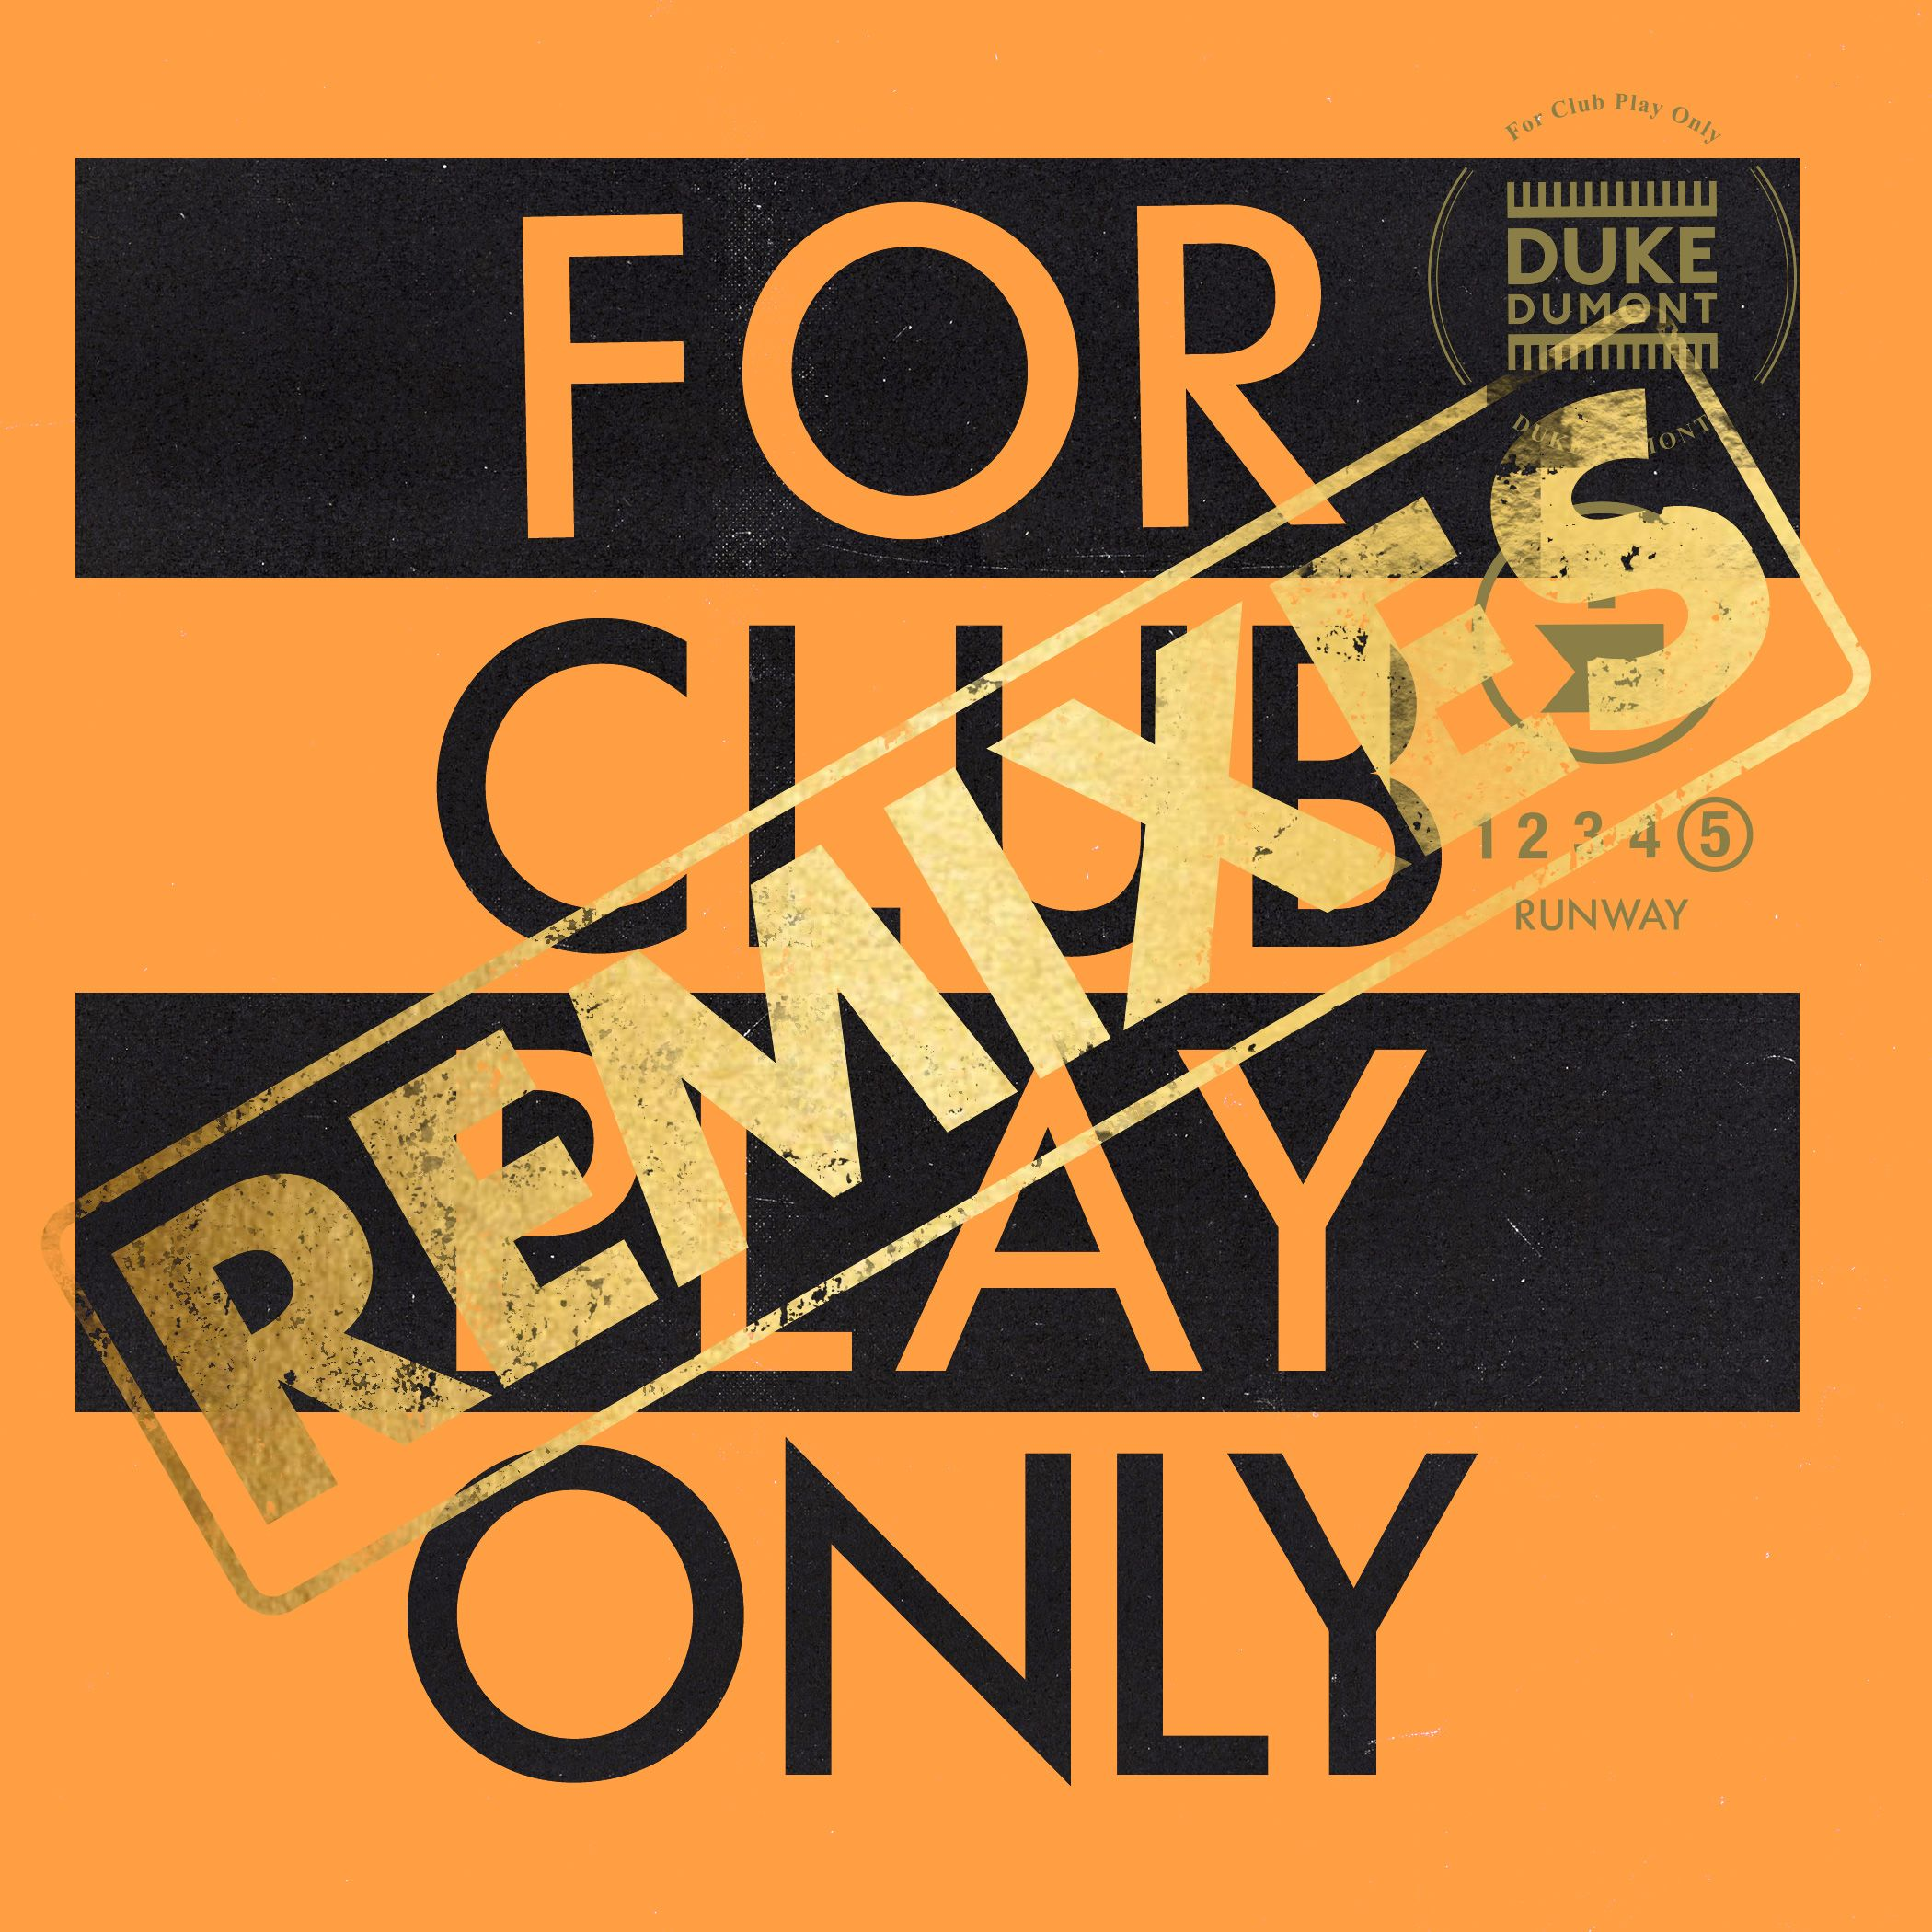 duked_forclubplayonly_remixes-final.jpg